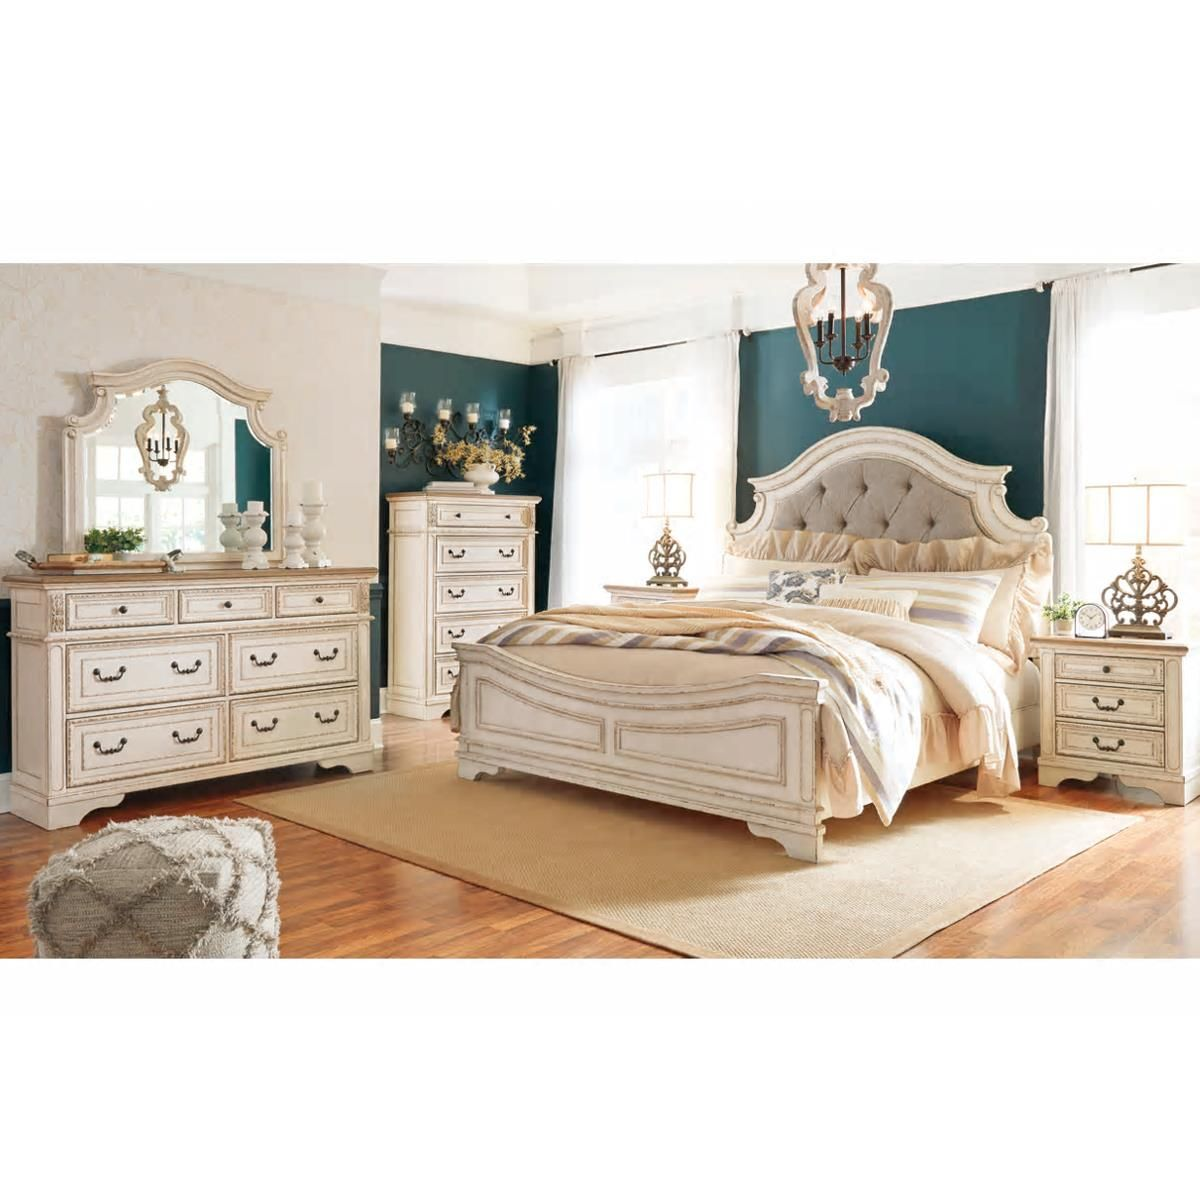 Signature Design by Ashley Realyn 4 Piece King Panel Bed